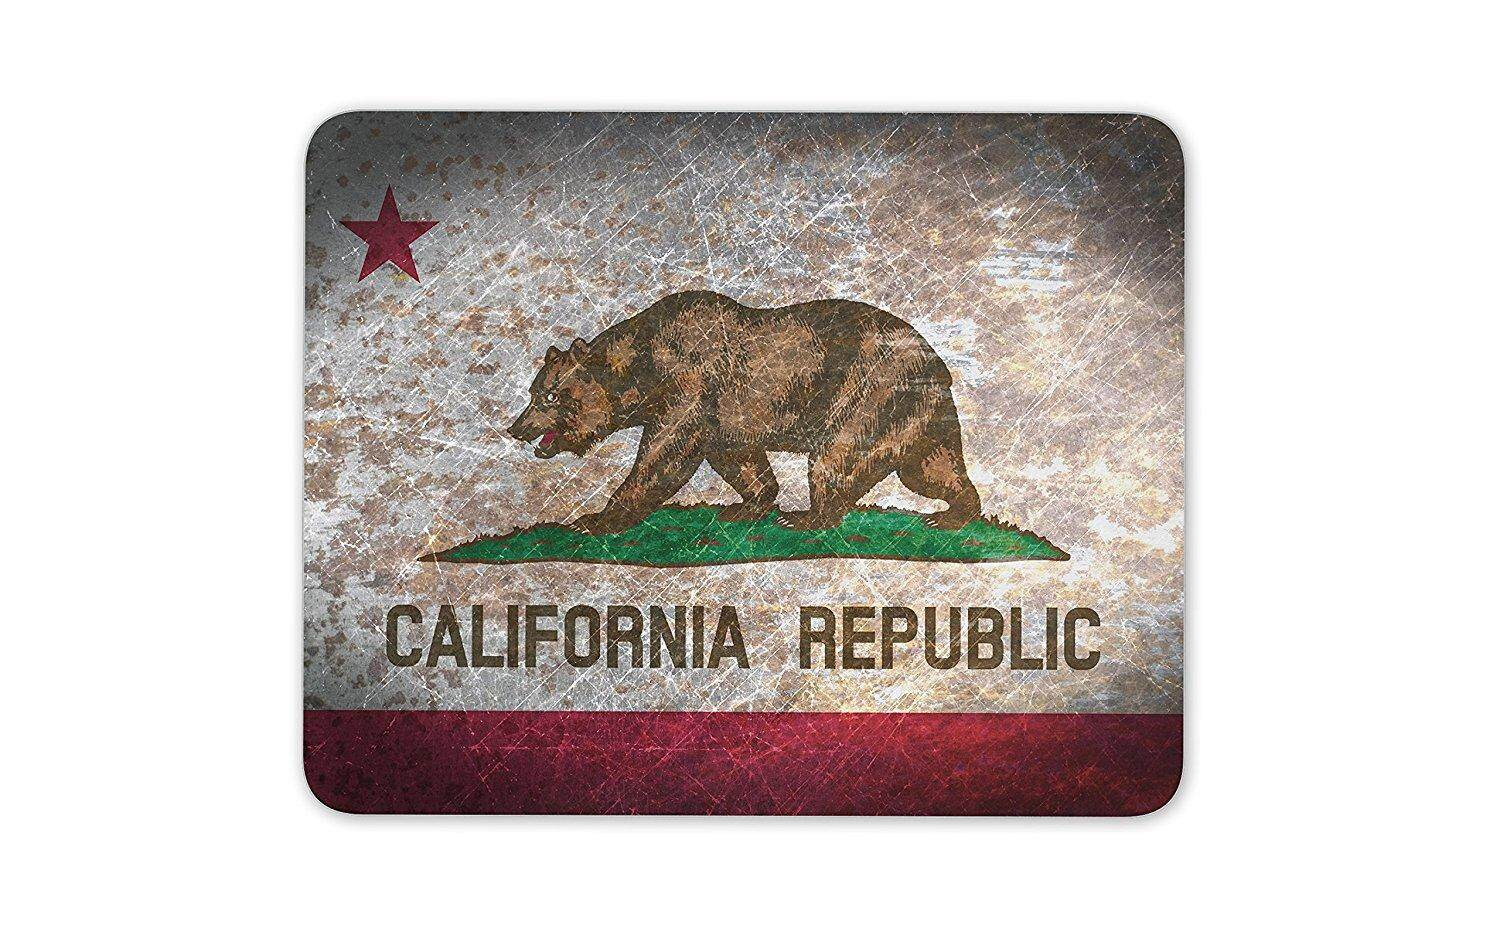 Mousepad Campagnard Rustic S01obv Still Life For Mouse Mat 2402003mm Gaming Mice Pad Intl 300 X 250mm 118 92 Inches California Flag Cali Usa